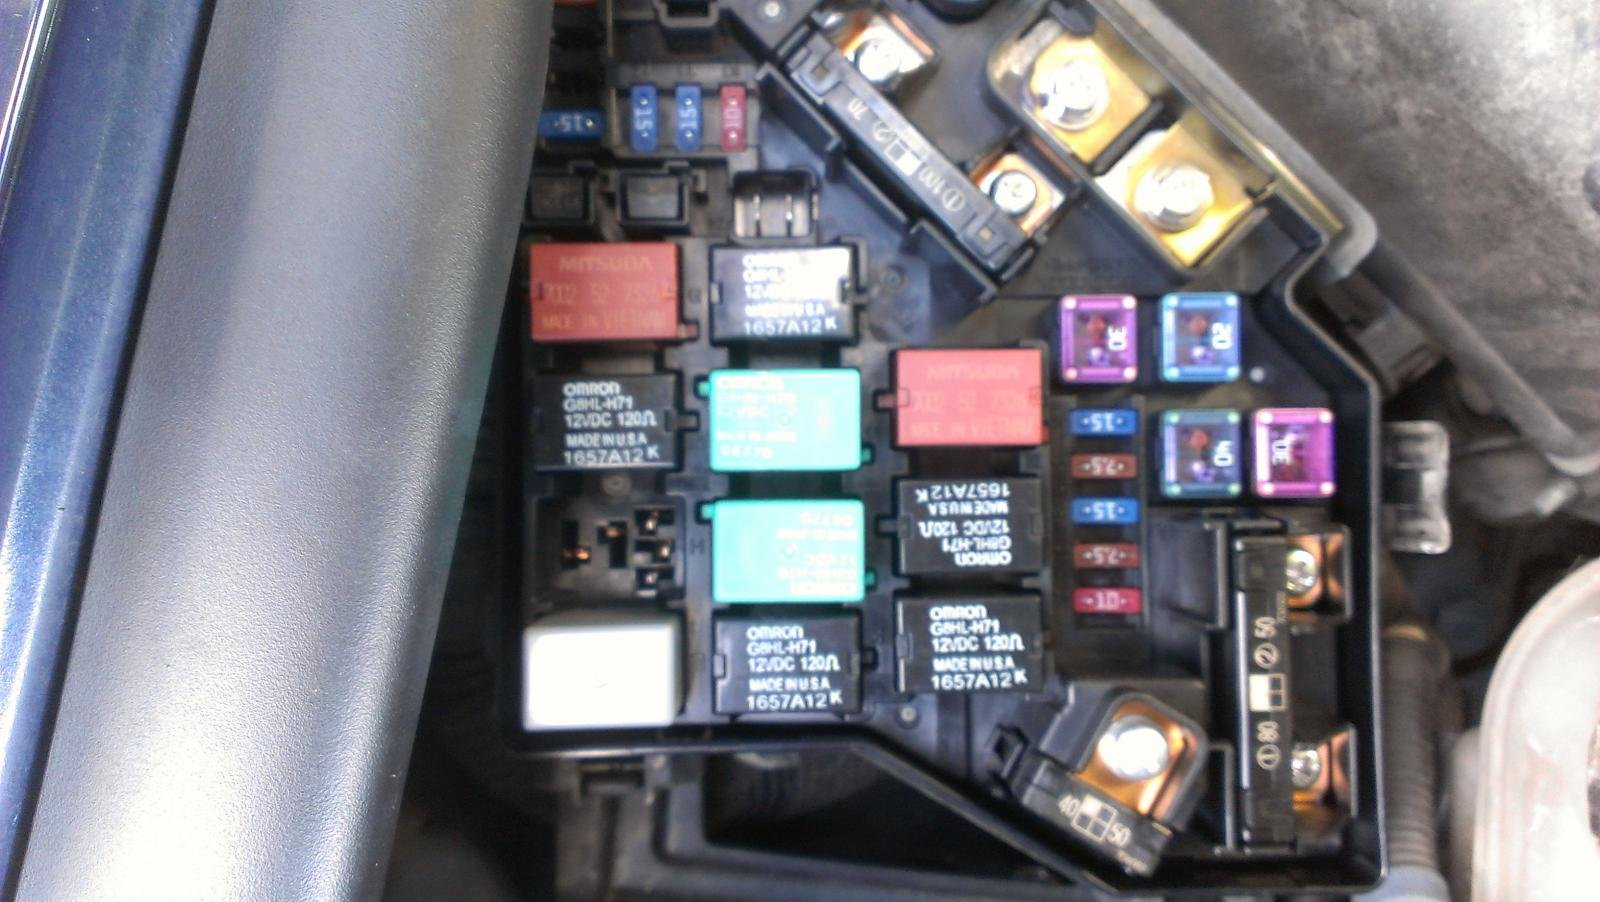 2007 Honda Civic Ac Wiring Diagram Books Of A C Compressor Won T Kick On 8th Generation Rh 8thcivic Com